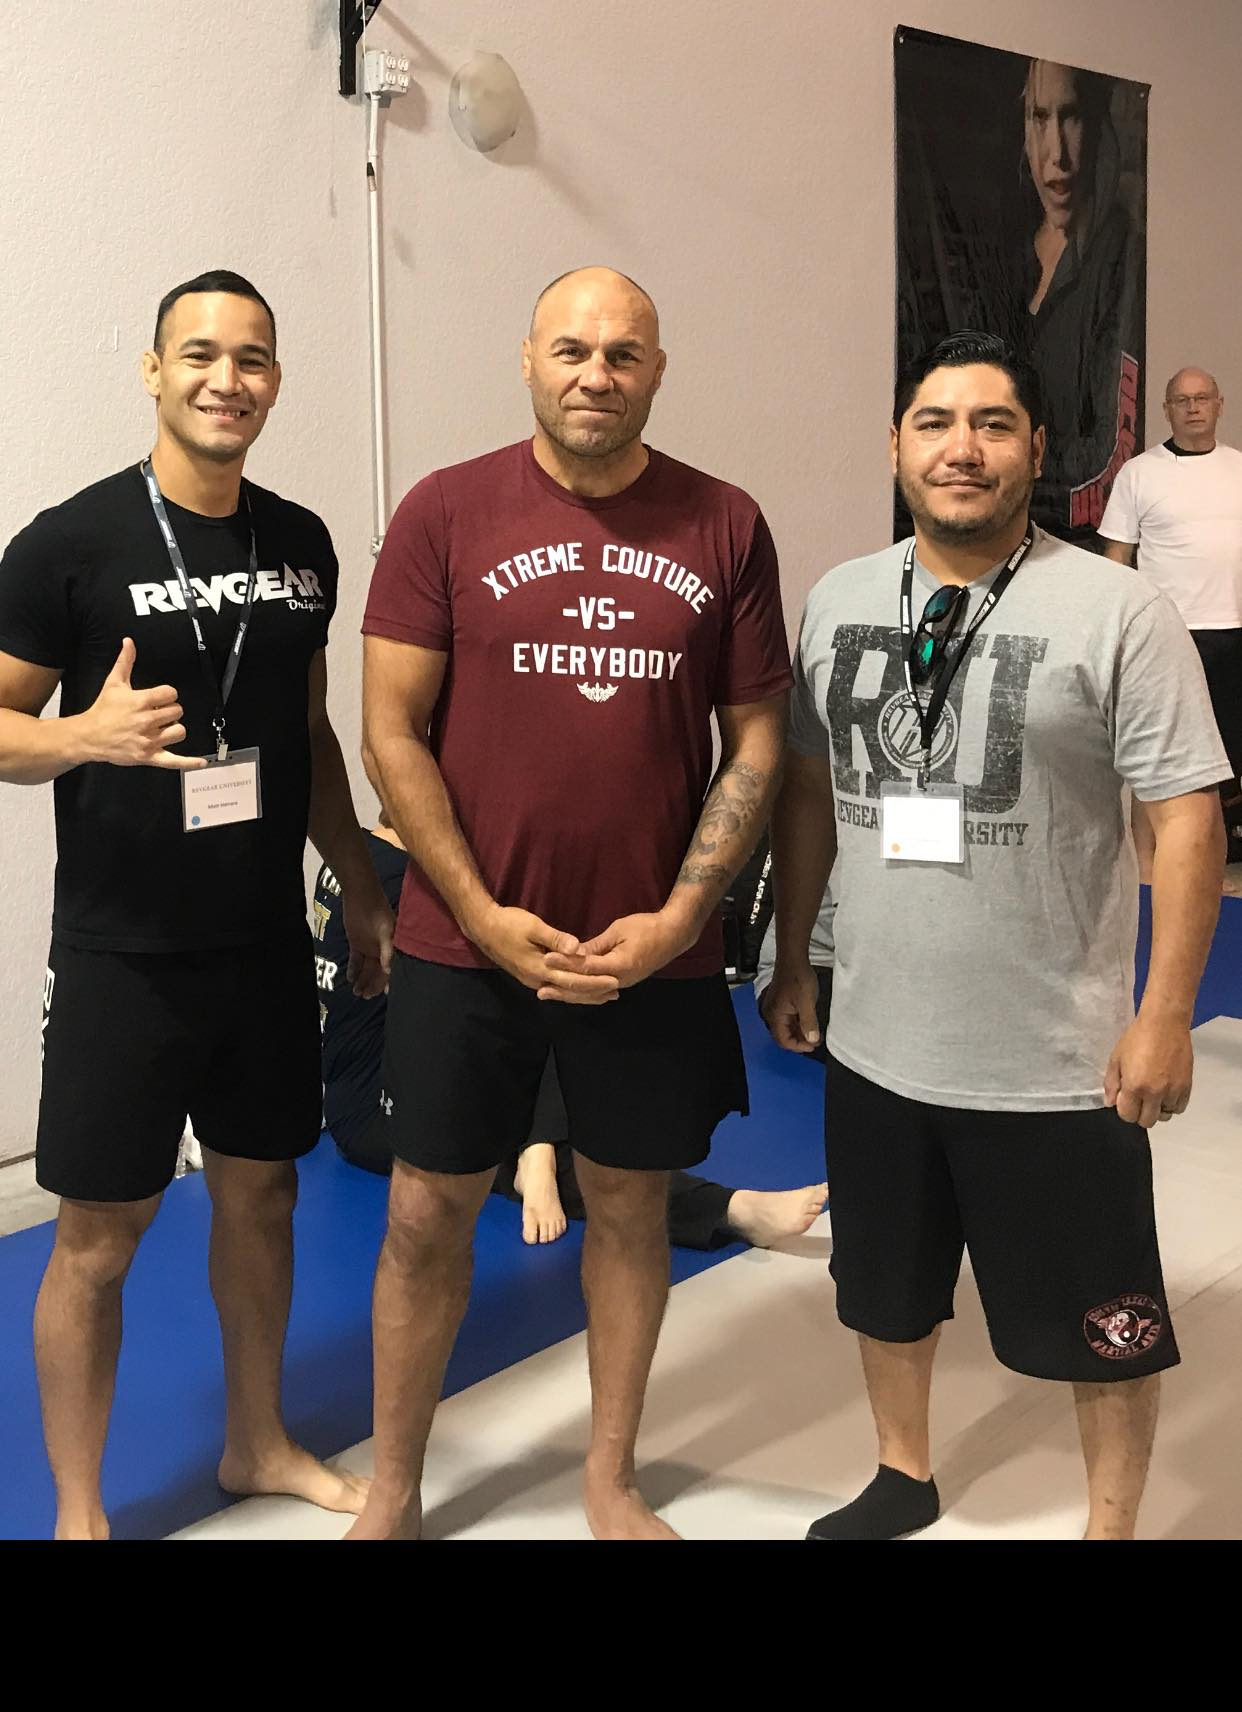 Seminar with Randy Couture